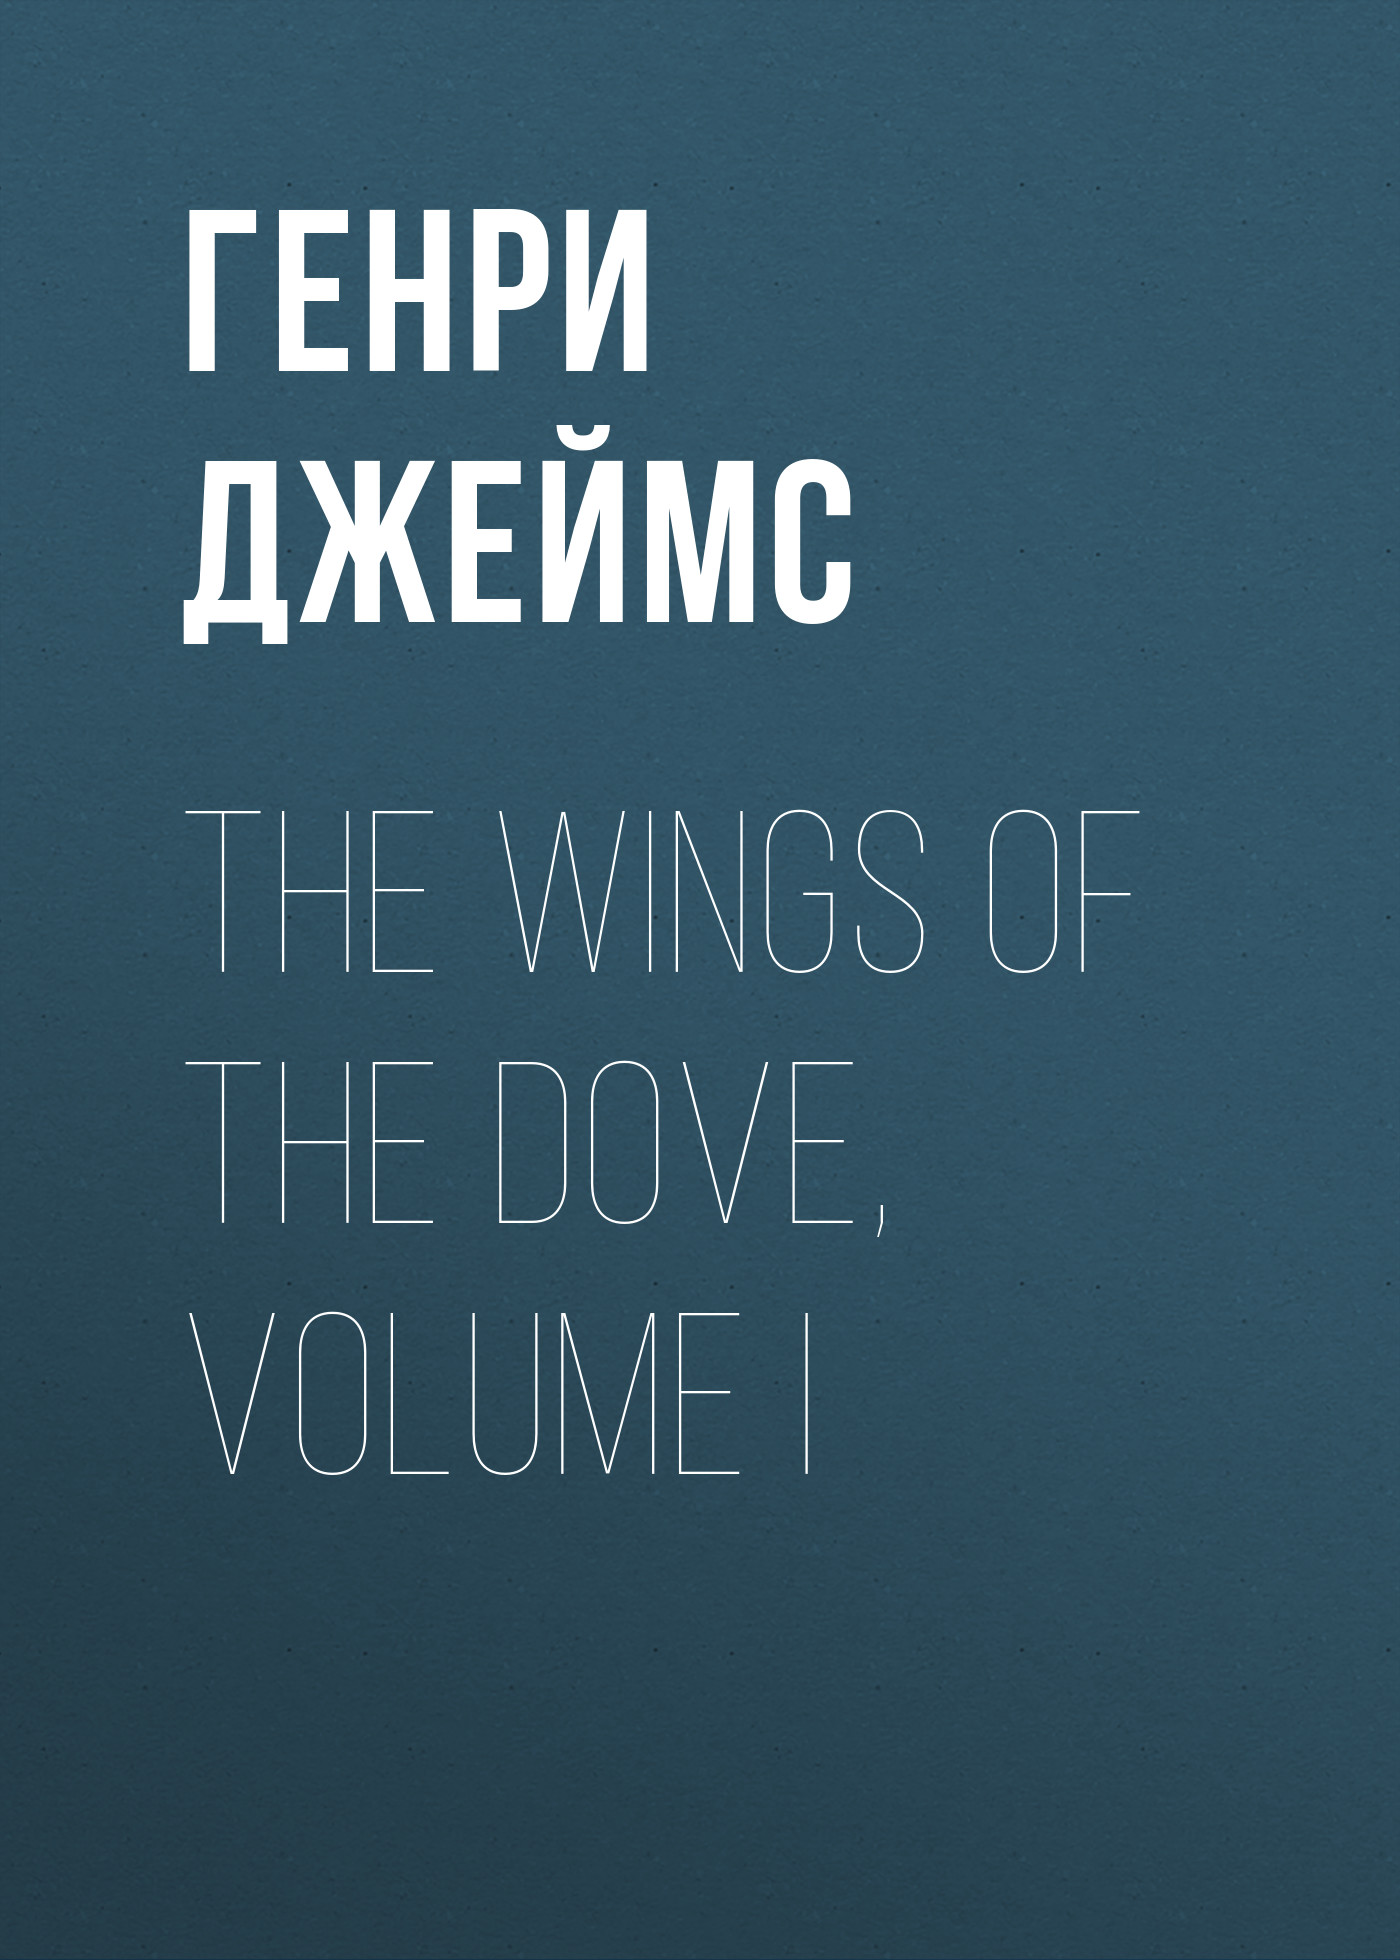 Генри Джеймс The Wings of the Dove, Volume I генри джеймс the bostonians vol i